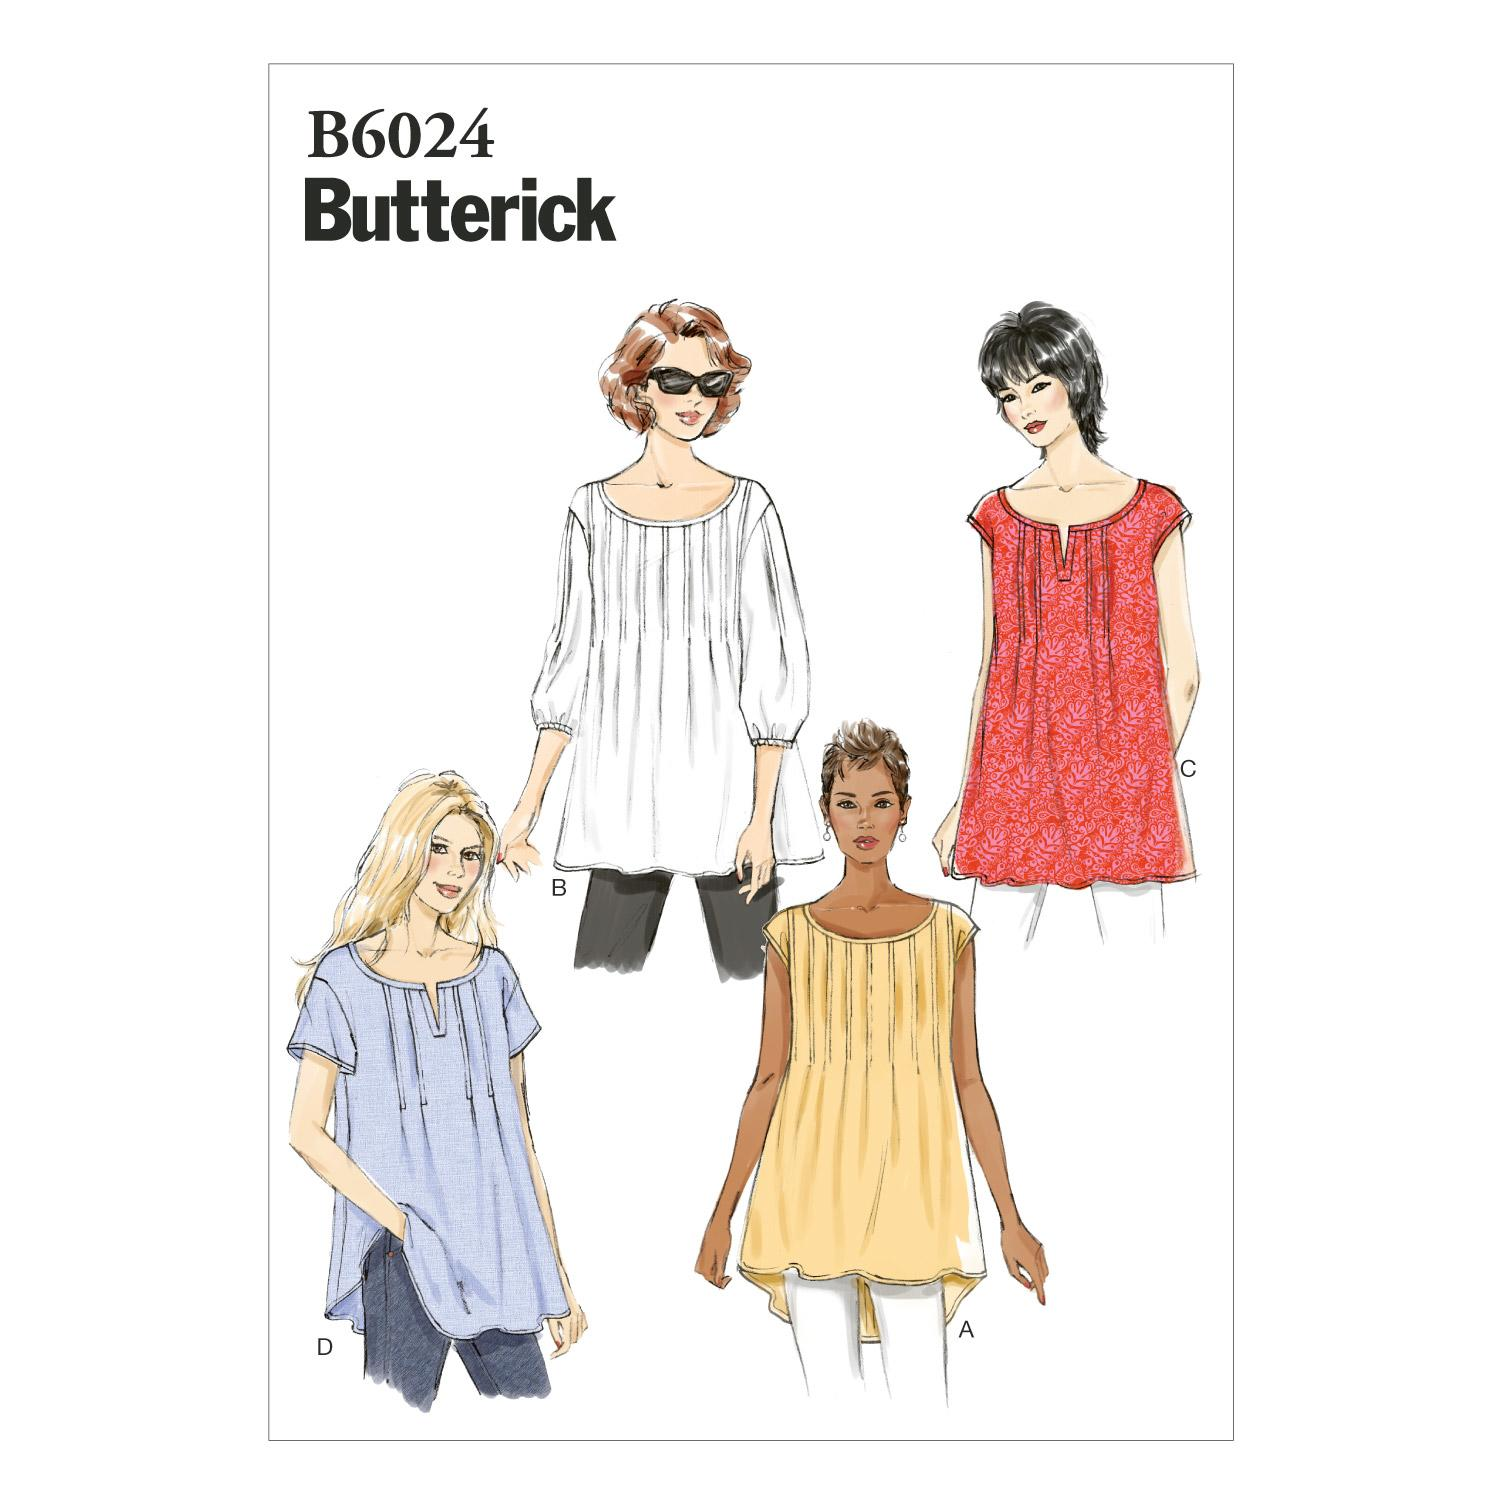 Butterick B6024 Misses' Top